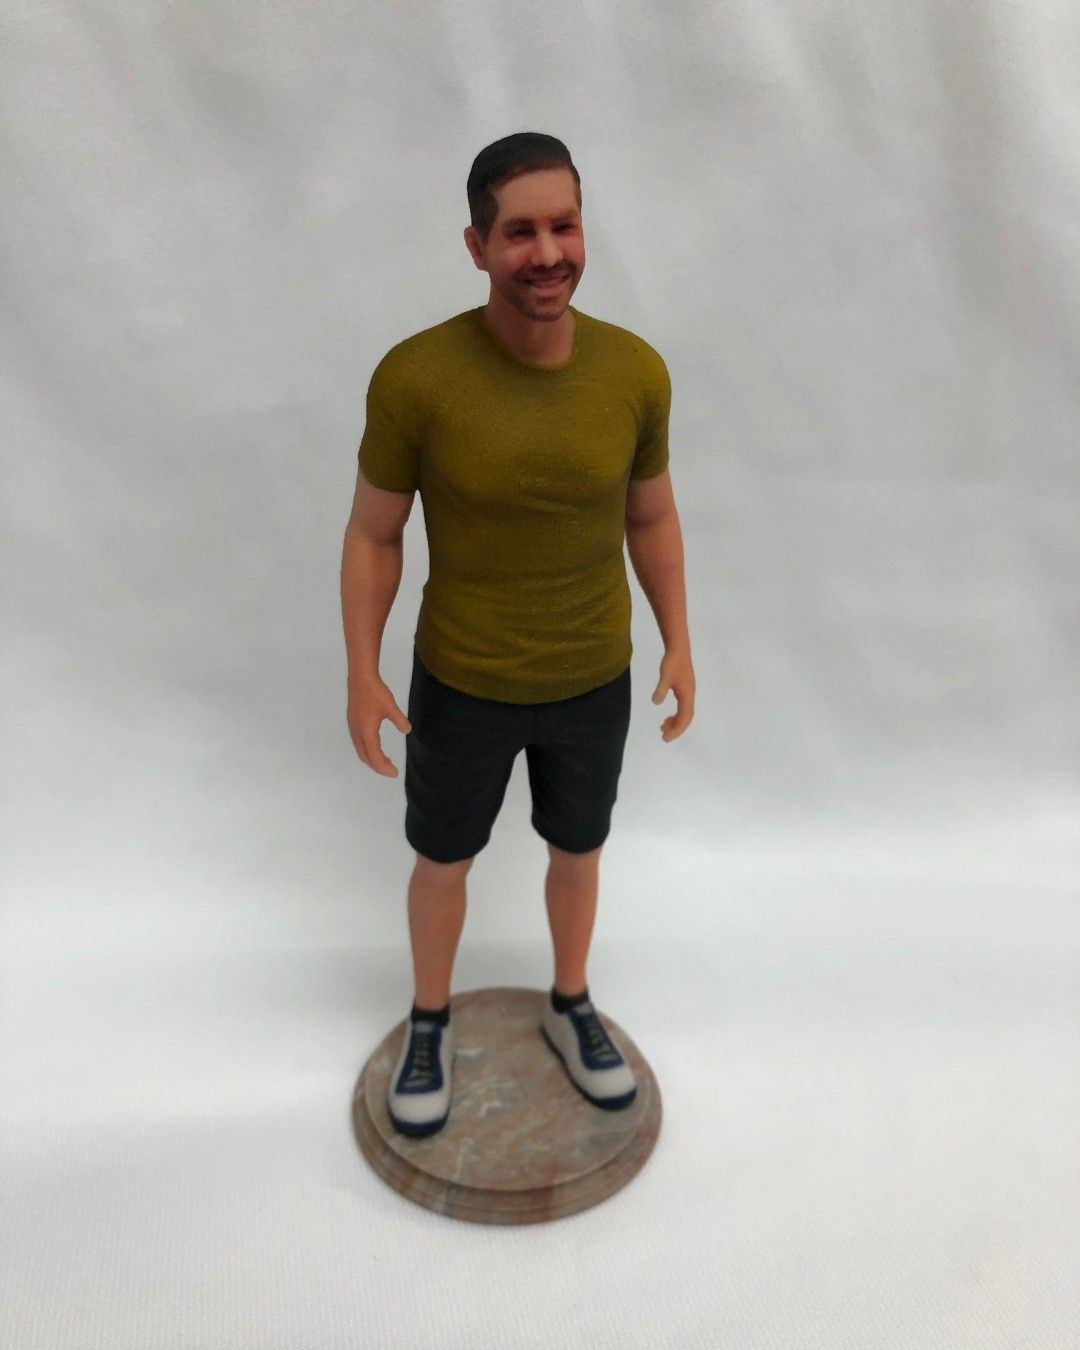 3D Selfie Figurines   From photos to Custom Exact 3D Printed Figurine of you or your loved ones!  NO PHYSICAL SCAN OR VISIT TO ANY STORE NEEDED!  4 Photos are all we need to make the Figurine!  #3dprint #3dprinting #3dprinted #3dprintdesign #3dprintdesigners #3dprintpeople #3dprintinsandstone #3dmodelling #3dselfiefigurines #3dfigurines #3dprintingworld #3dminiaturemodel #giftshop #giftscart #giftsgallery #friendshipgift #friendshipgifts #friendshipgiftstore #friendshipgiftidea #friendshipgiftde